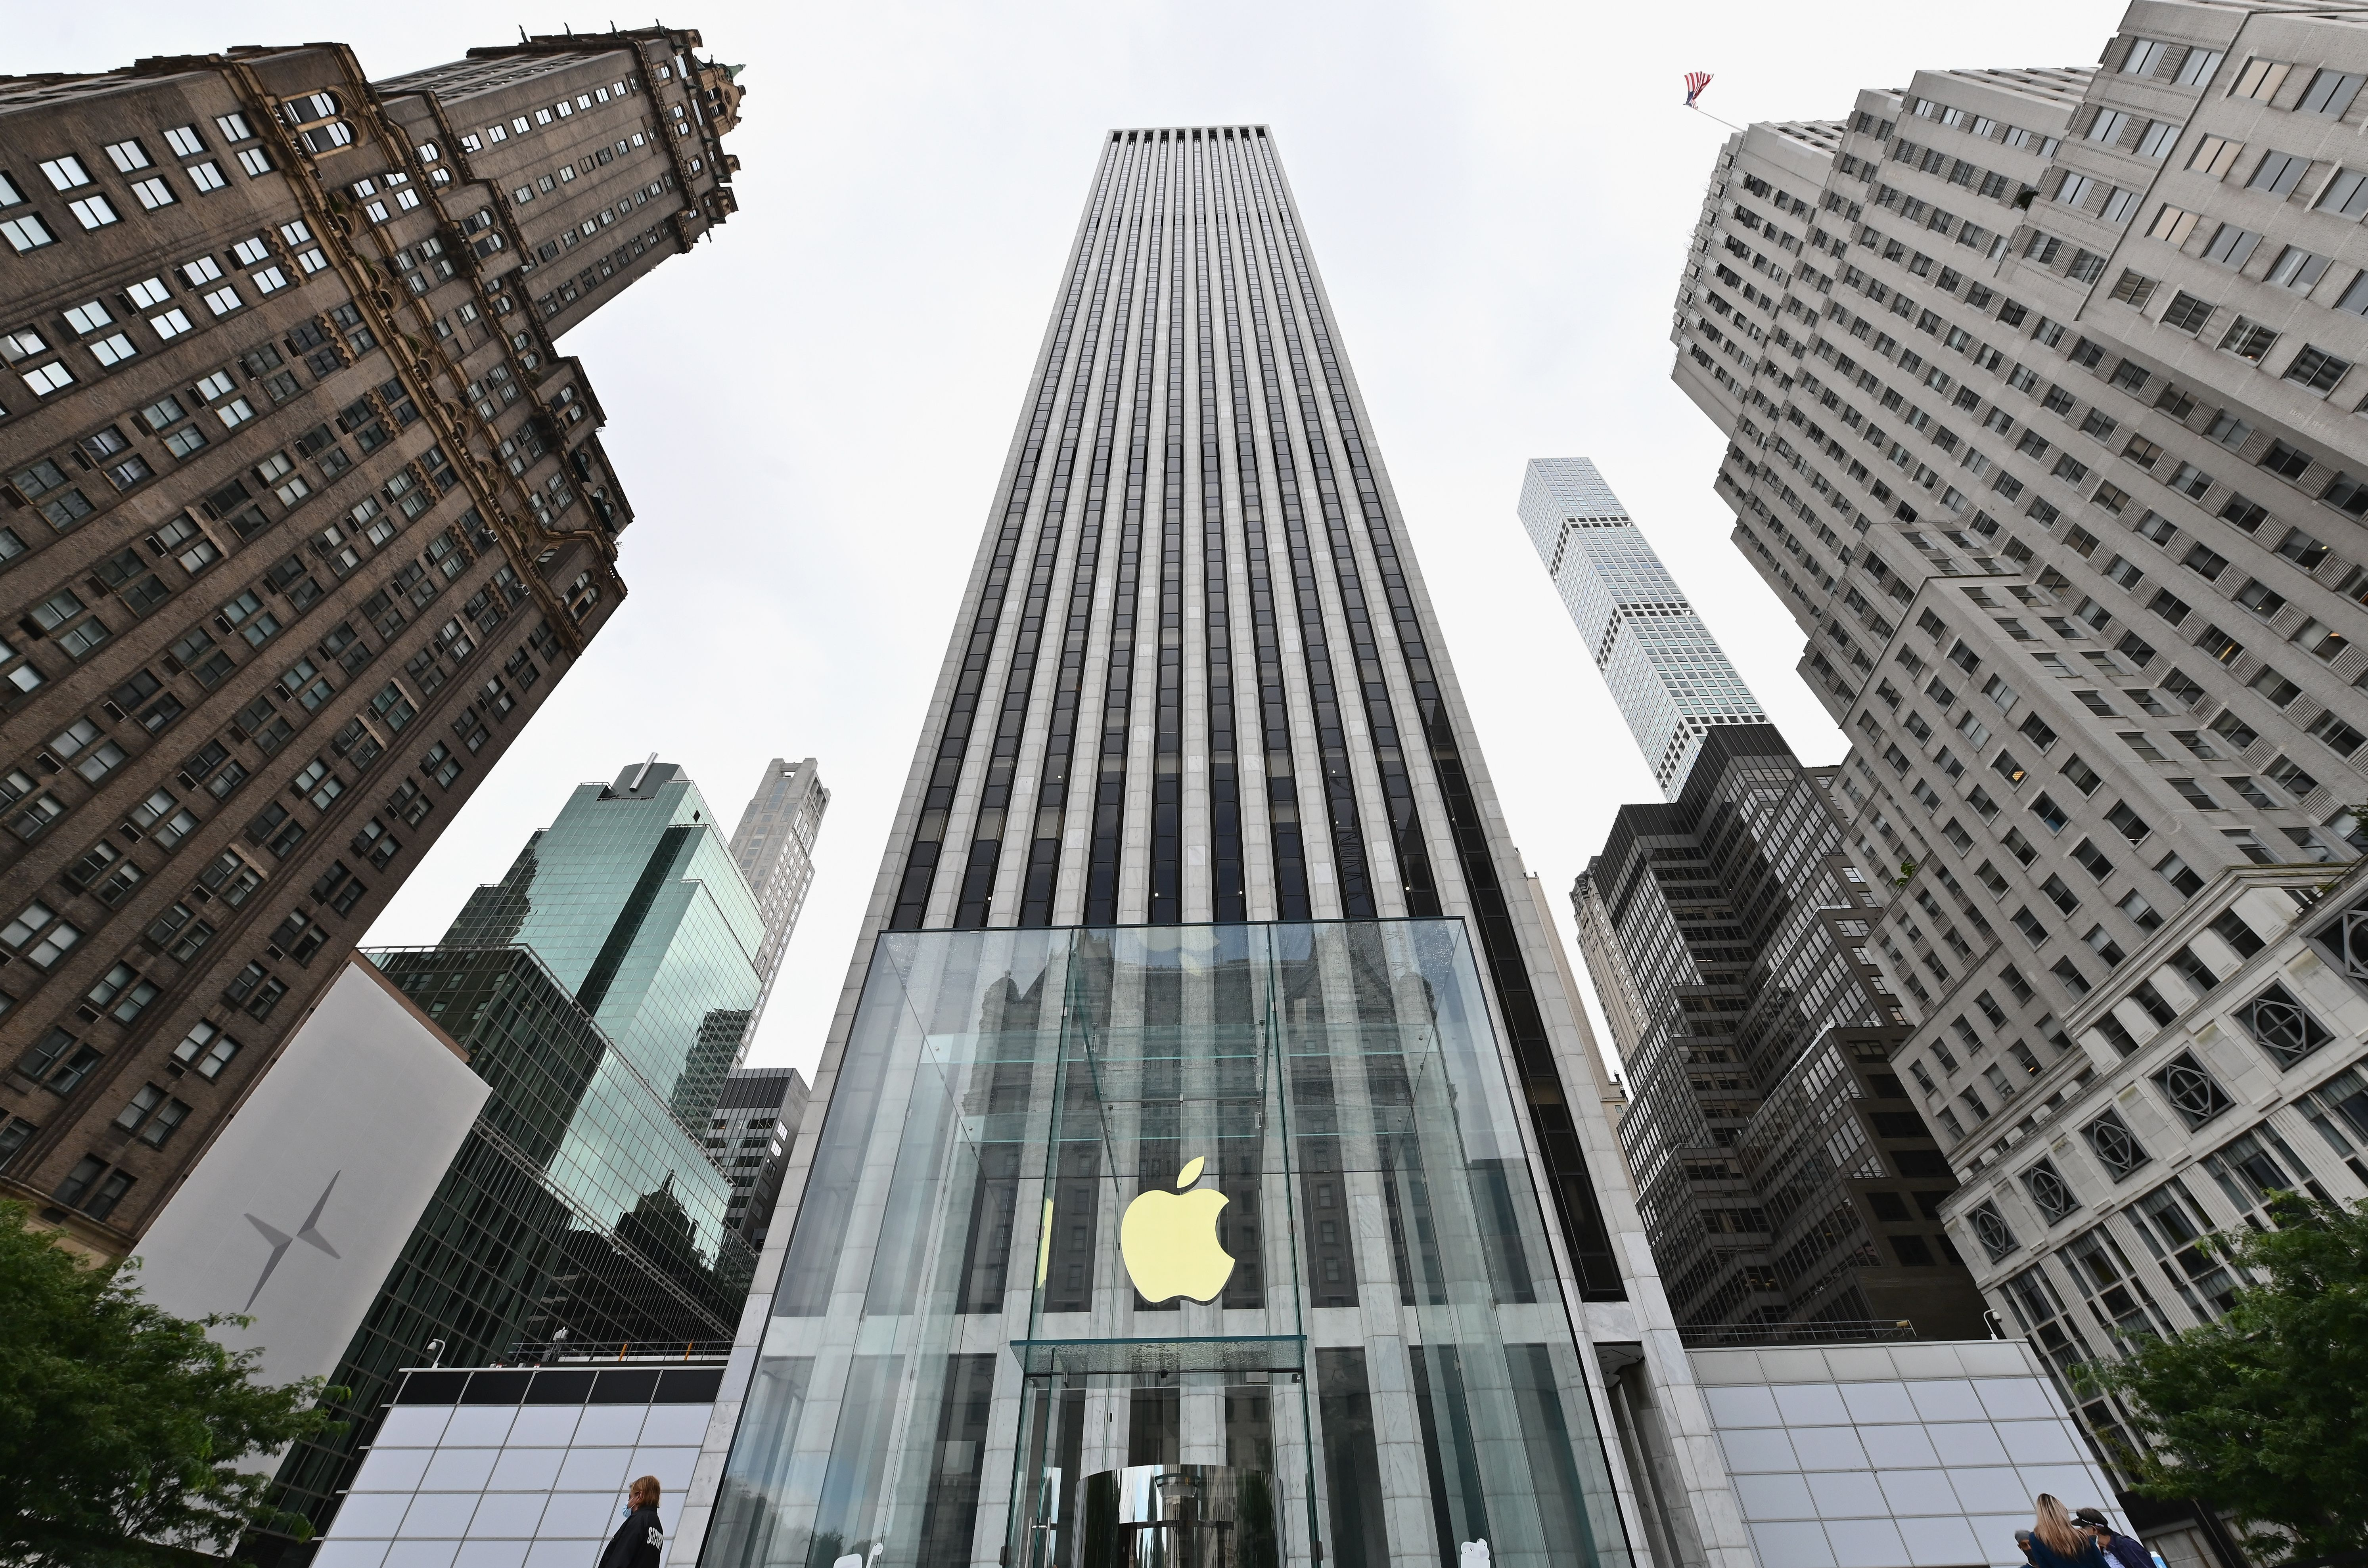 View of the Apple store on Fifth Avenue on September 28, 2020 in New York City. (Photo by Angela Weiss / AFP) (Photo by ANGELA WEISS/AFP via Getty Images)